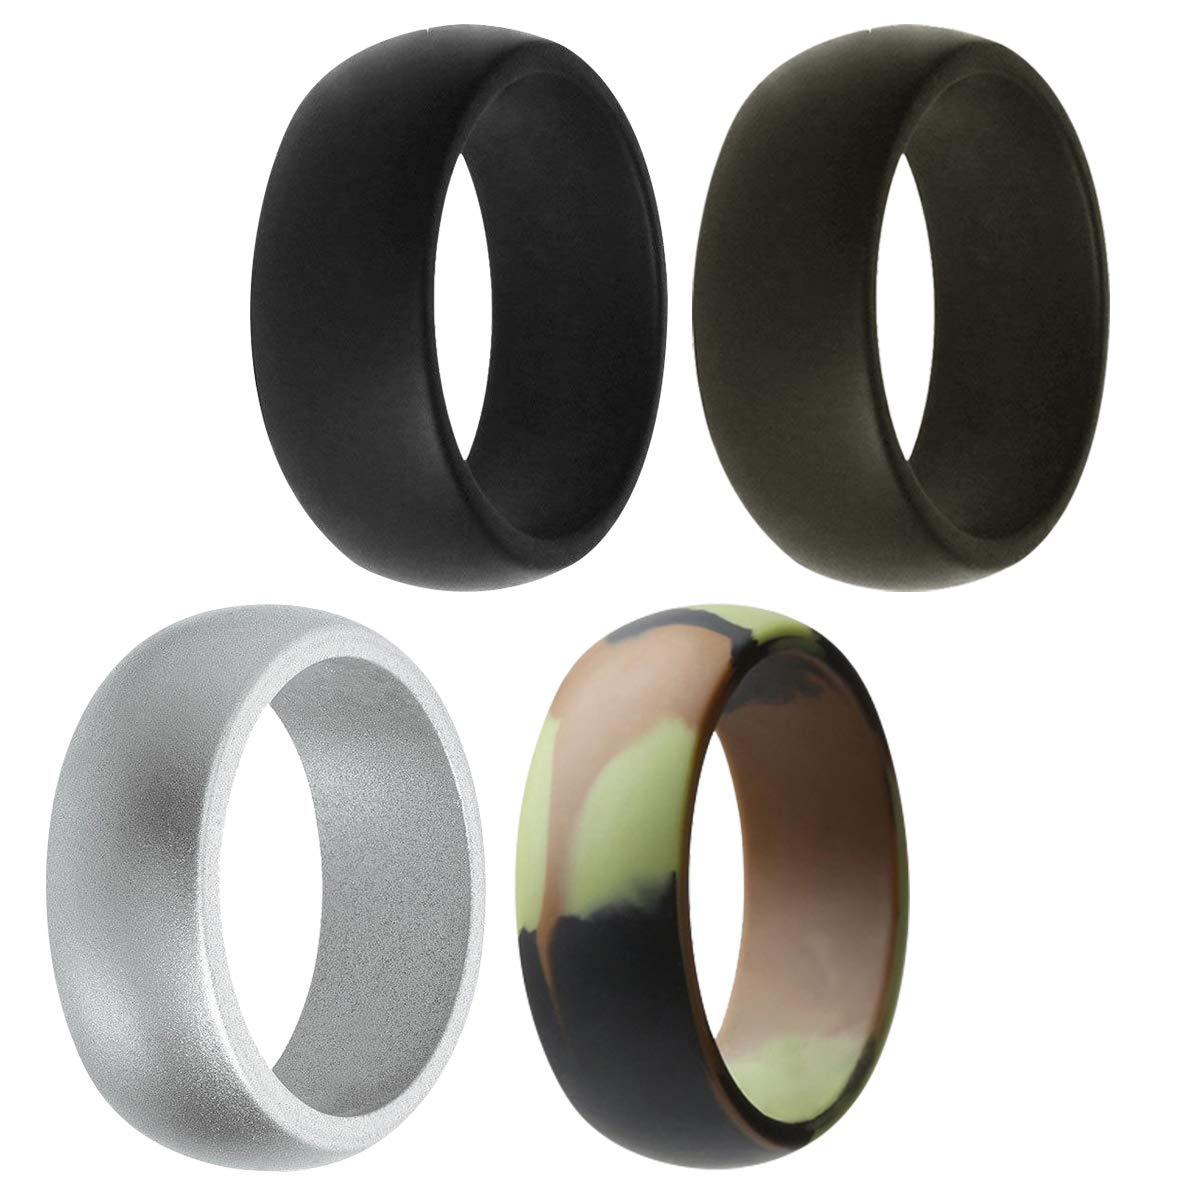 Army Green Size 9 Black,Silver,Grey Assorted Colors Rubber Wedding Bands for Men Silicone Wedding Ring for Men 4 Pack G.F